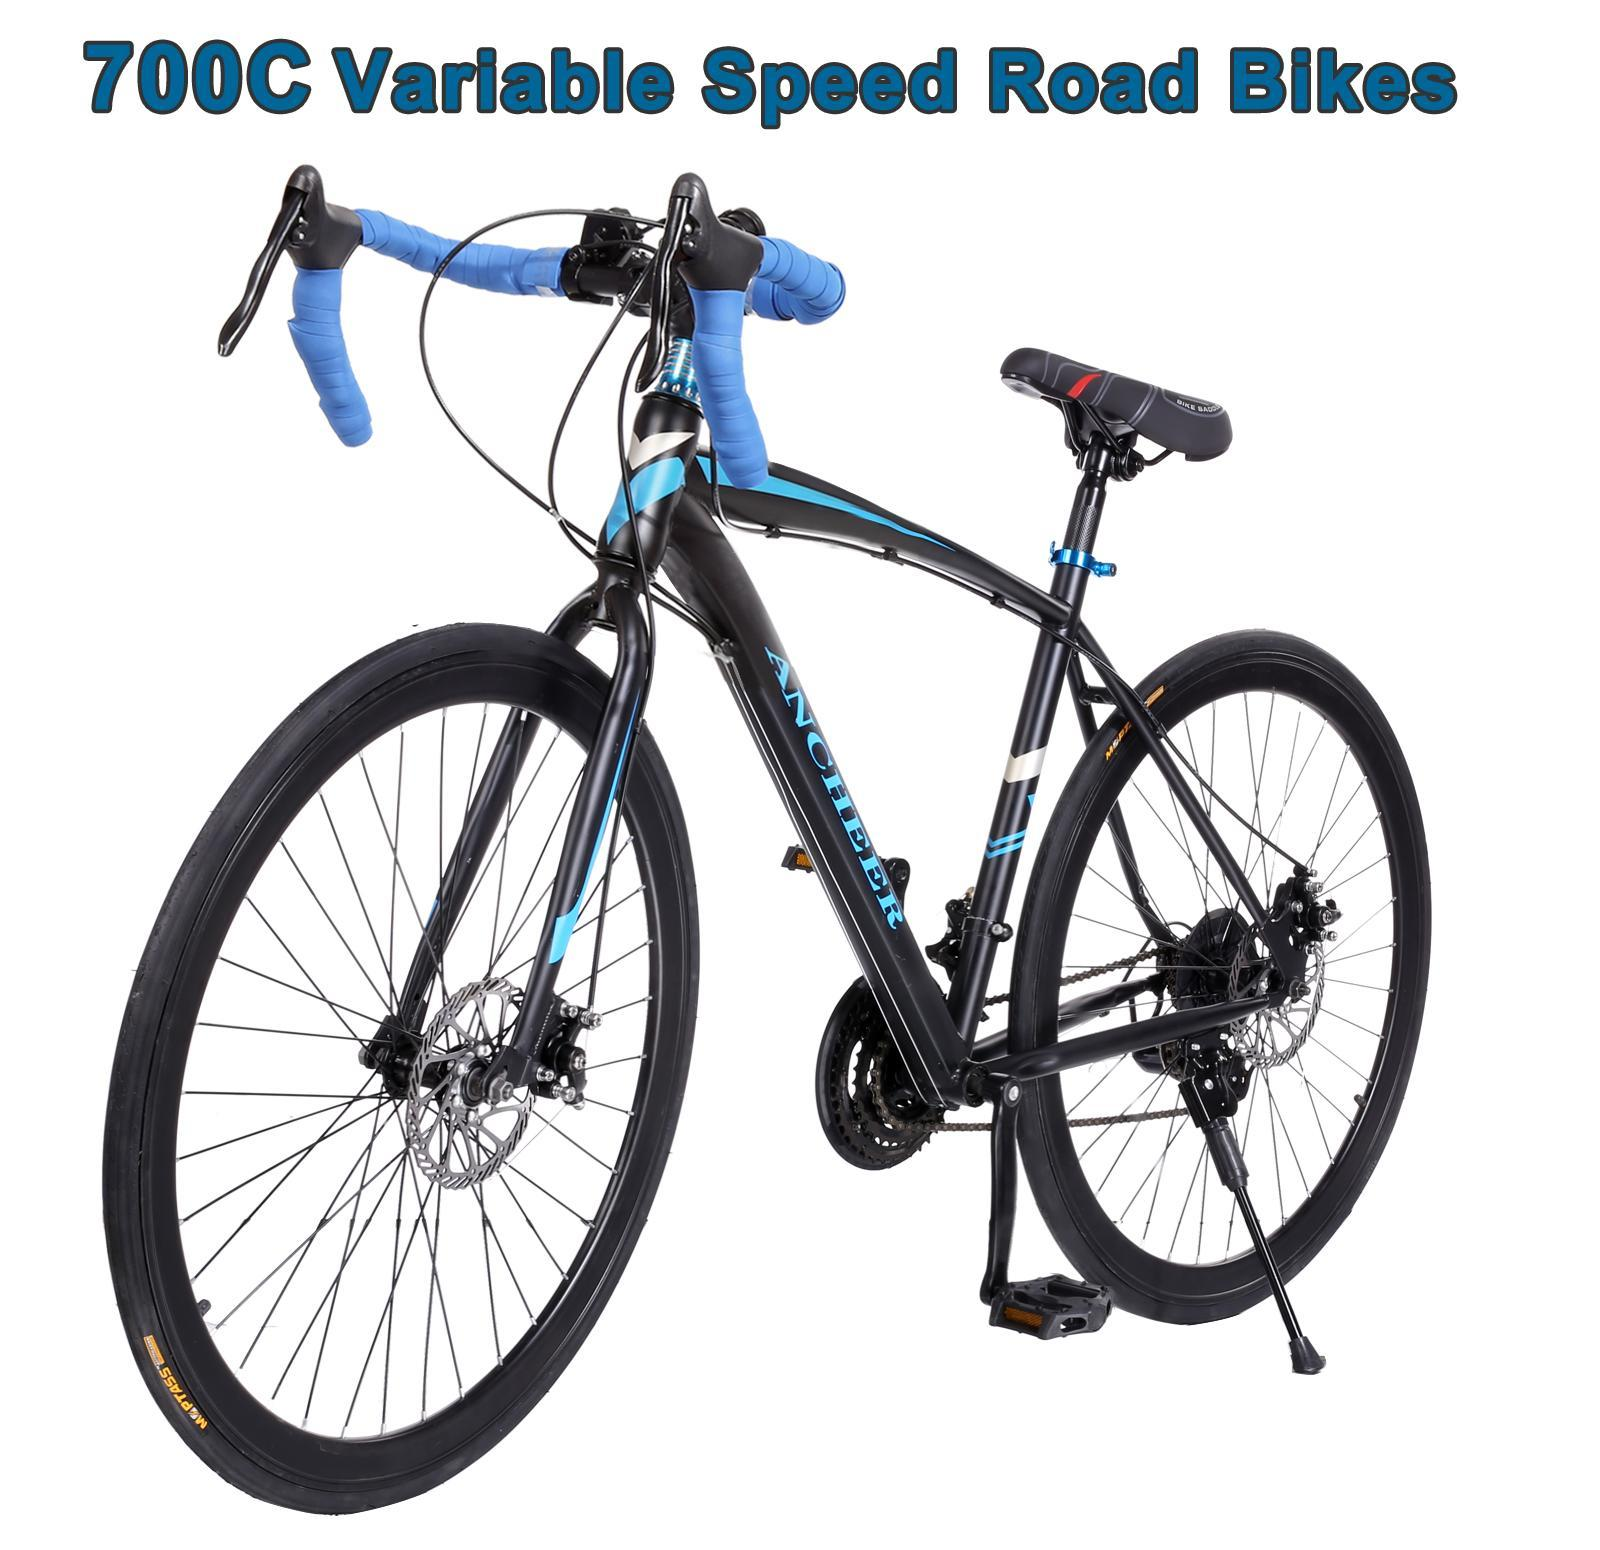 700cc Men's Bike 21-speed Road Bike Cycling  Aluminum Bicycle